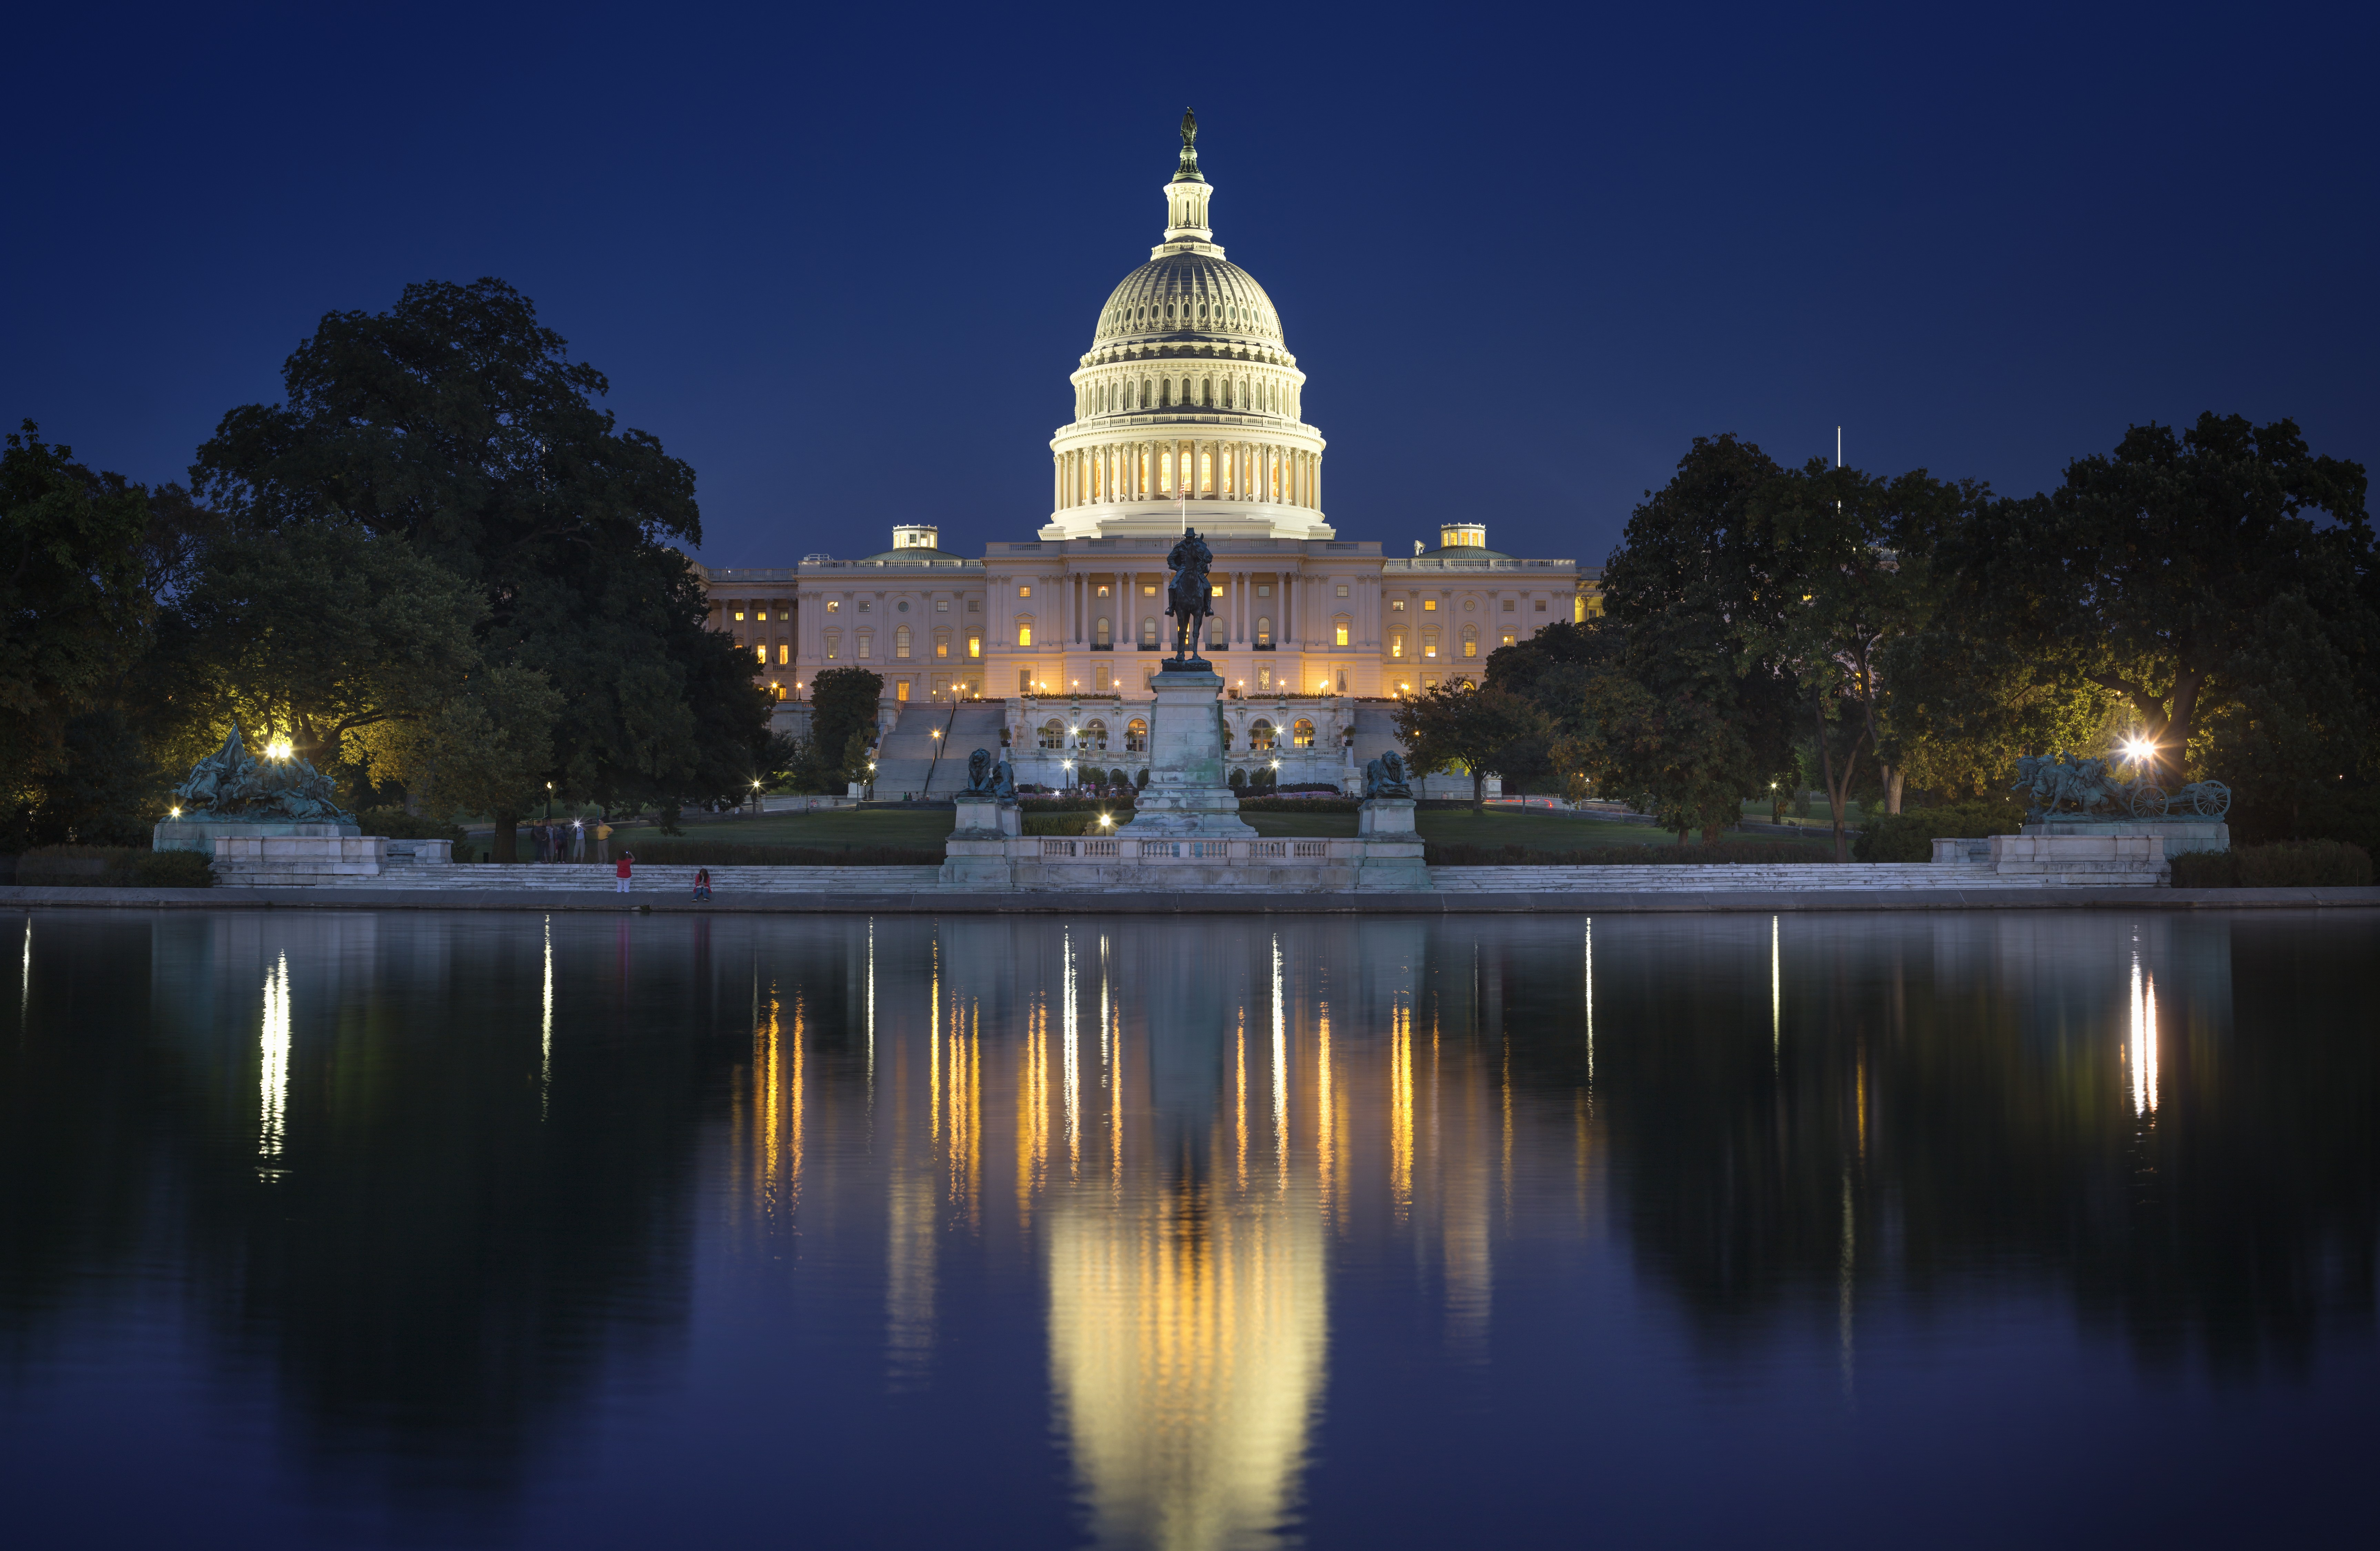 View of the U.S. Capitol over the Reflecting Pool in Washington D.C on Oct. 6, 2013.